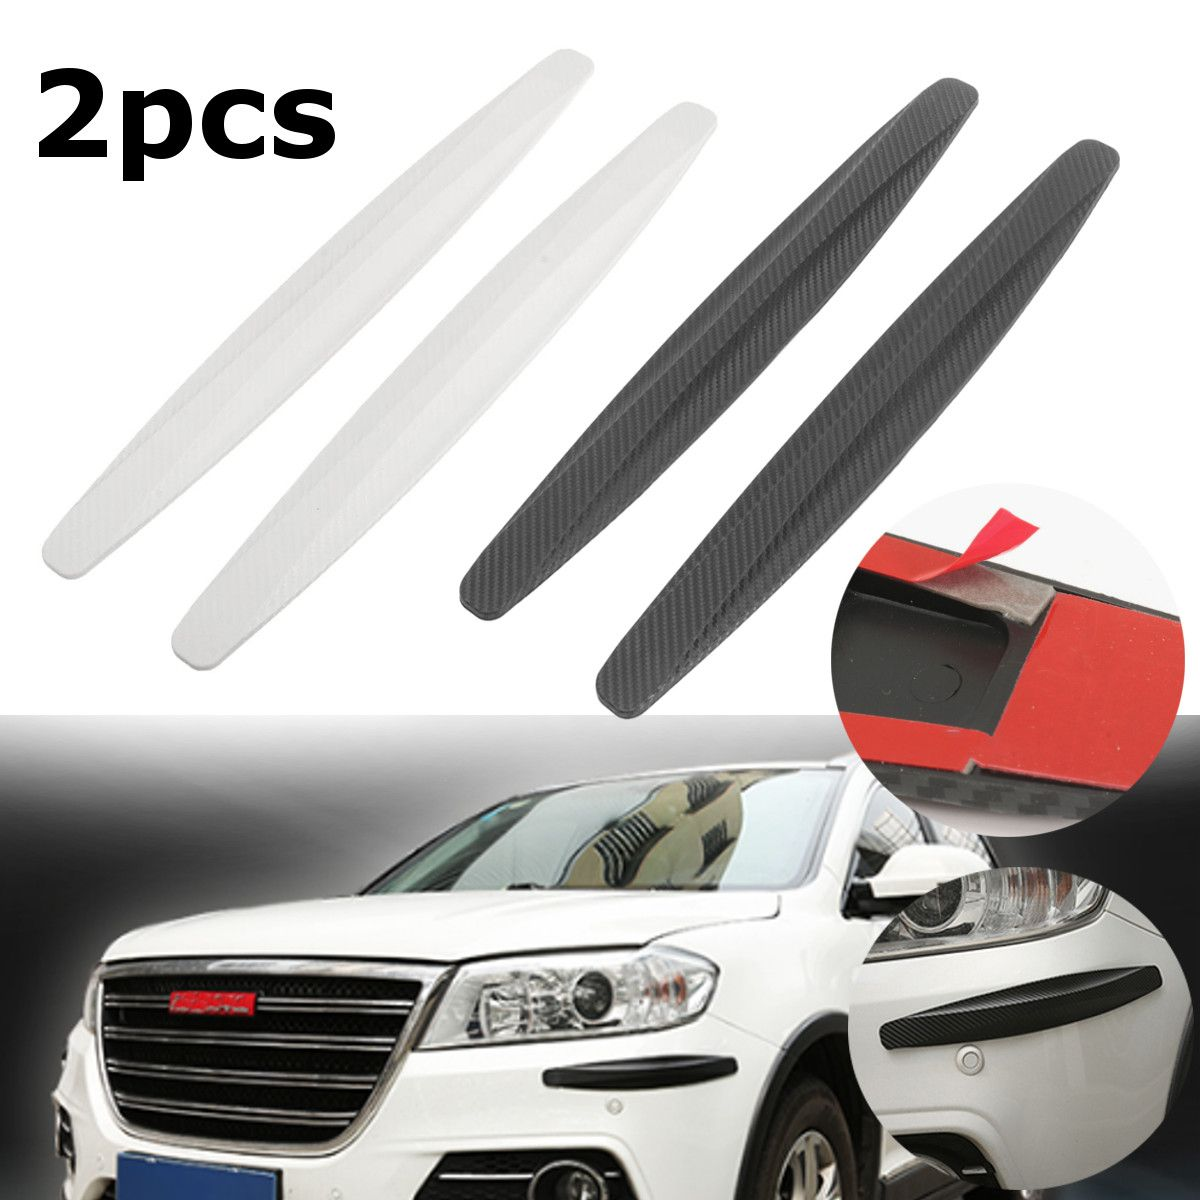 1 Pair Carbon White Black Car Bumper Corner Protector Door Guard Protective Cover Strip Rubbing Trim